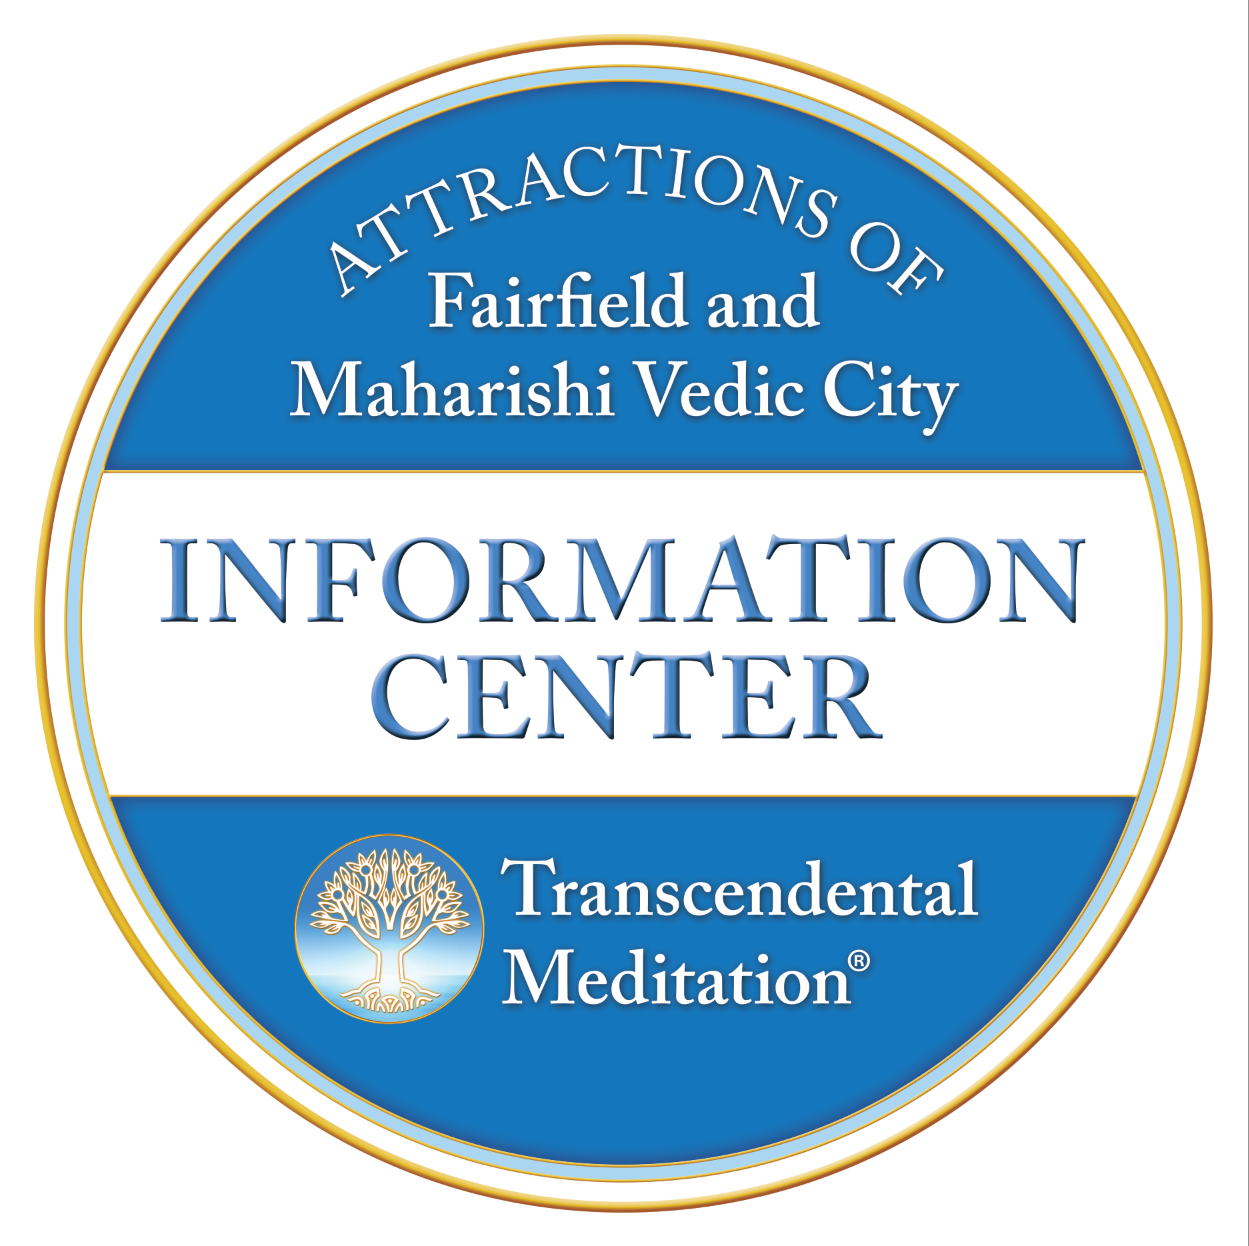 FAIRFIELD & TM® INFORMATION CENTER